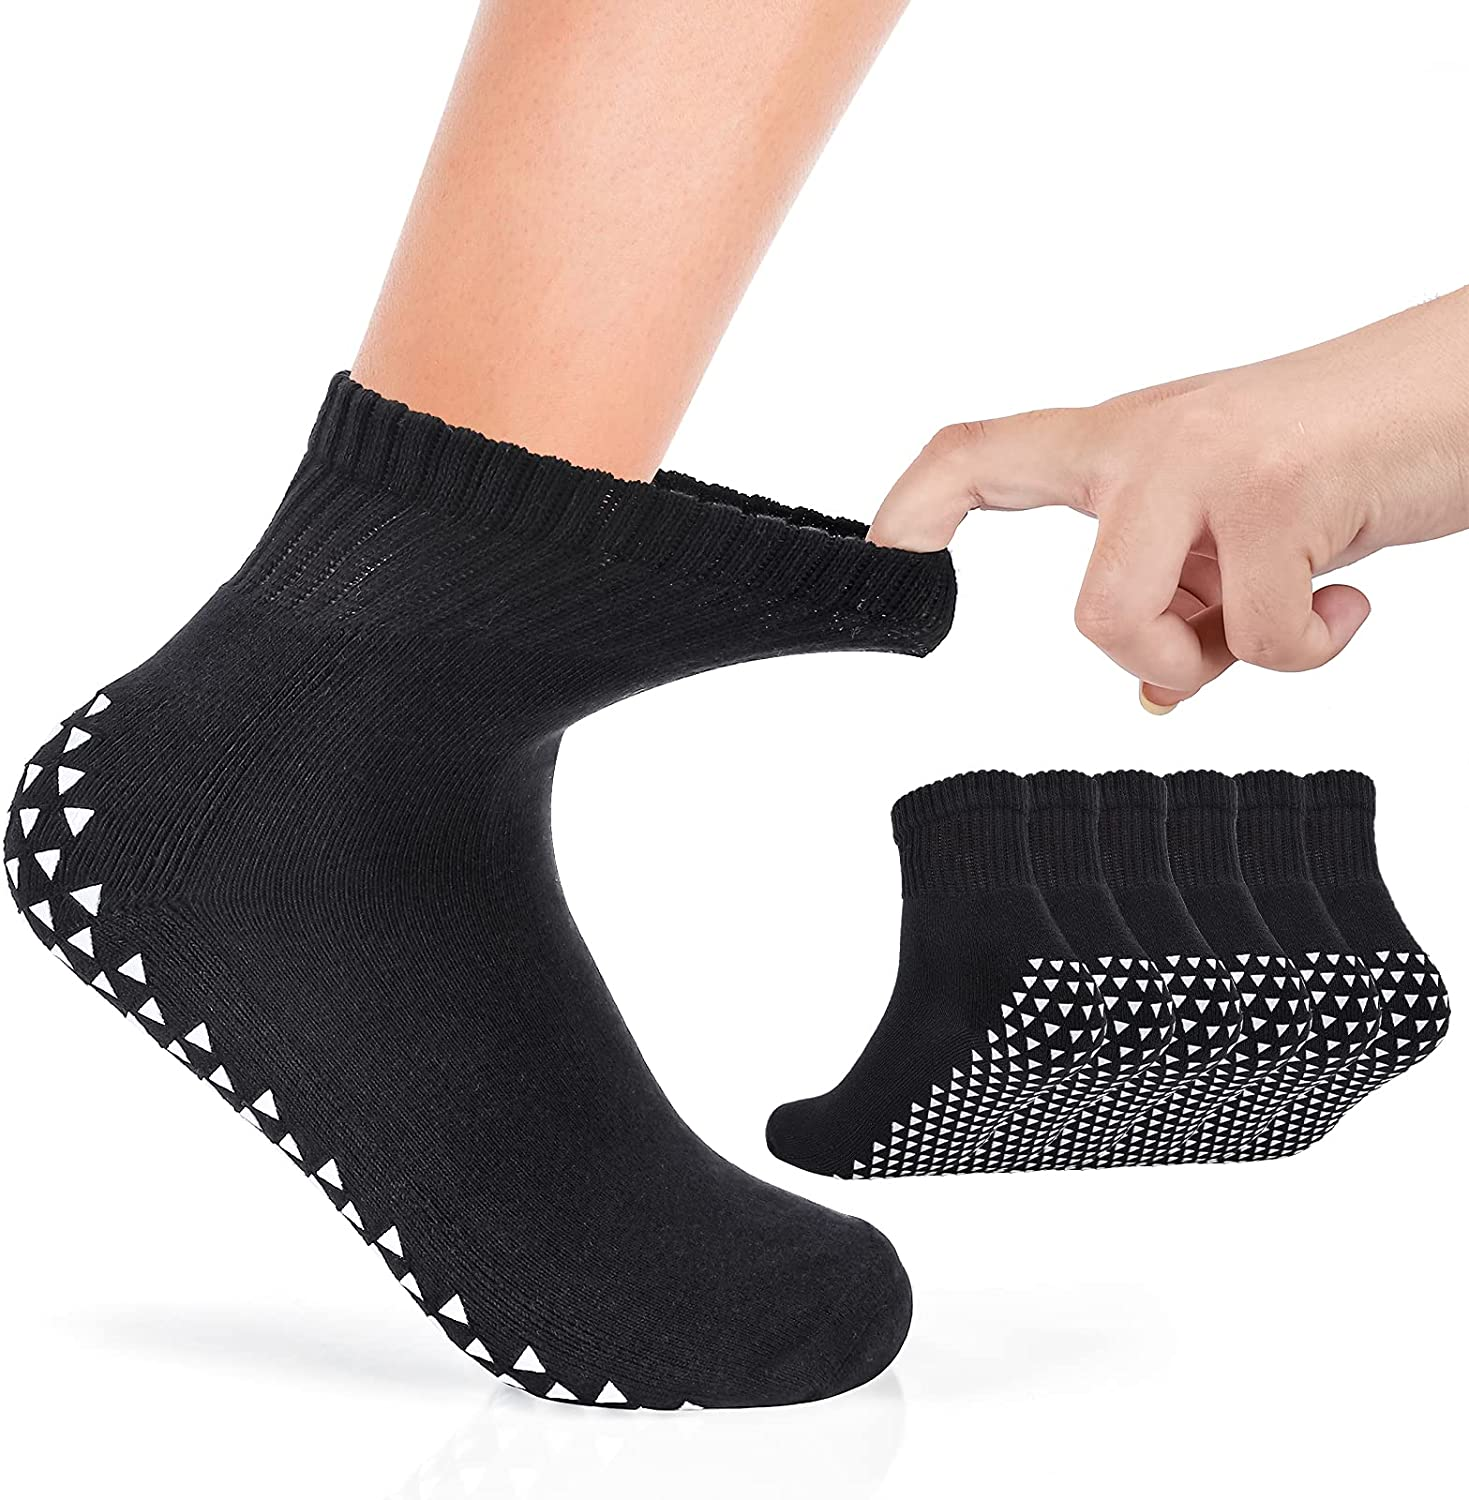 Indianapolis Mall 3 Pairs Sales of SALE items from new works Super Wide Socks Lymphedema with Non-Skid for Grips